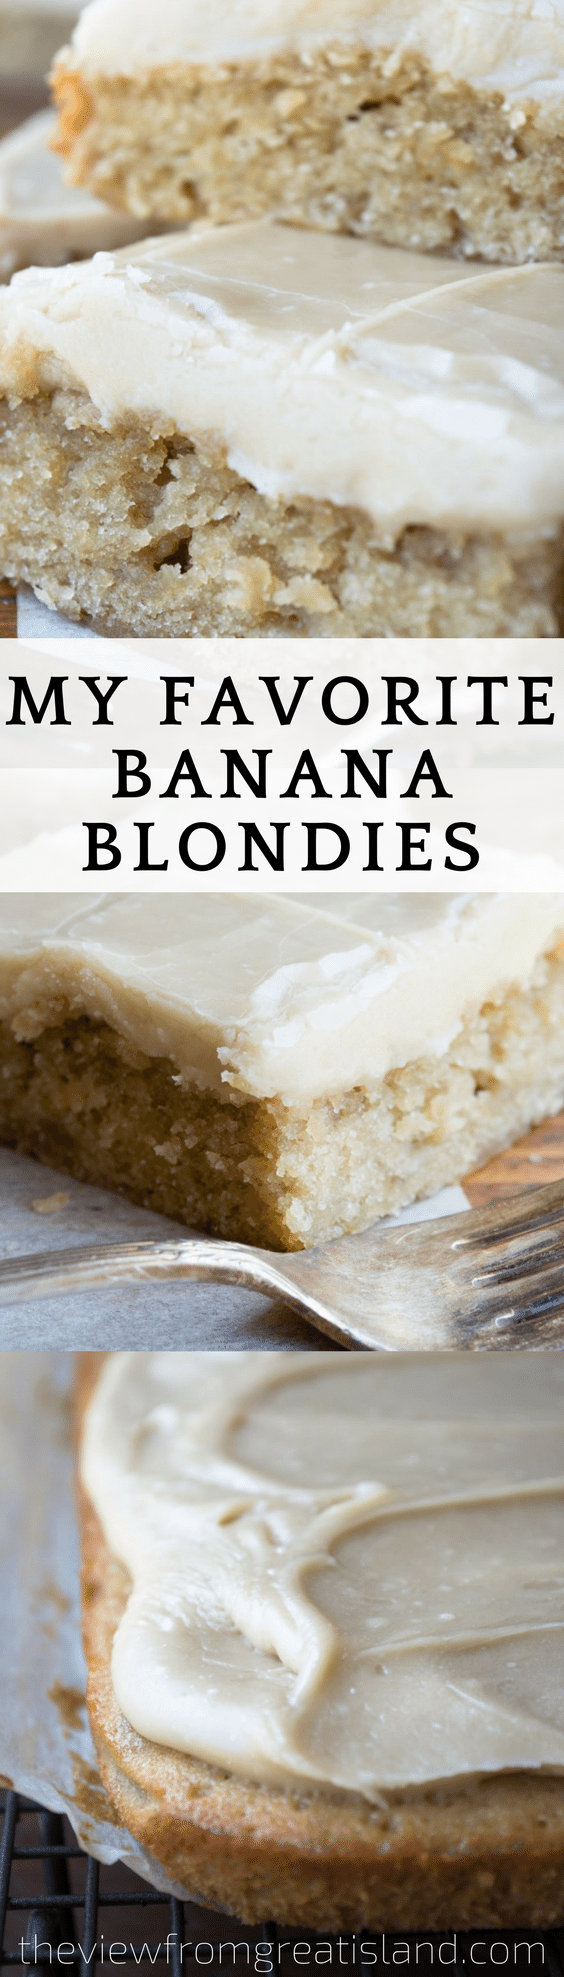 My Favorite Banana Blondies ~ these easy blondies are rich, dense, and fudgy, with a to-die-for caramel frosting! #bananacake #bananabread #blondies #caramelfrosting #snackcake #cake #dessert #easyblondies #bestbananacake #brownies